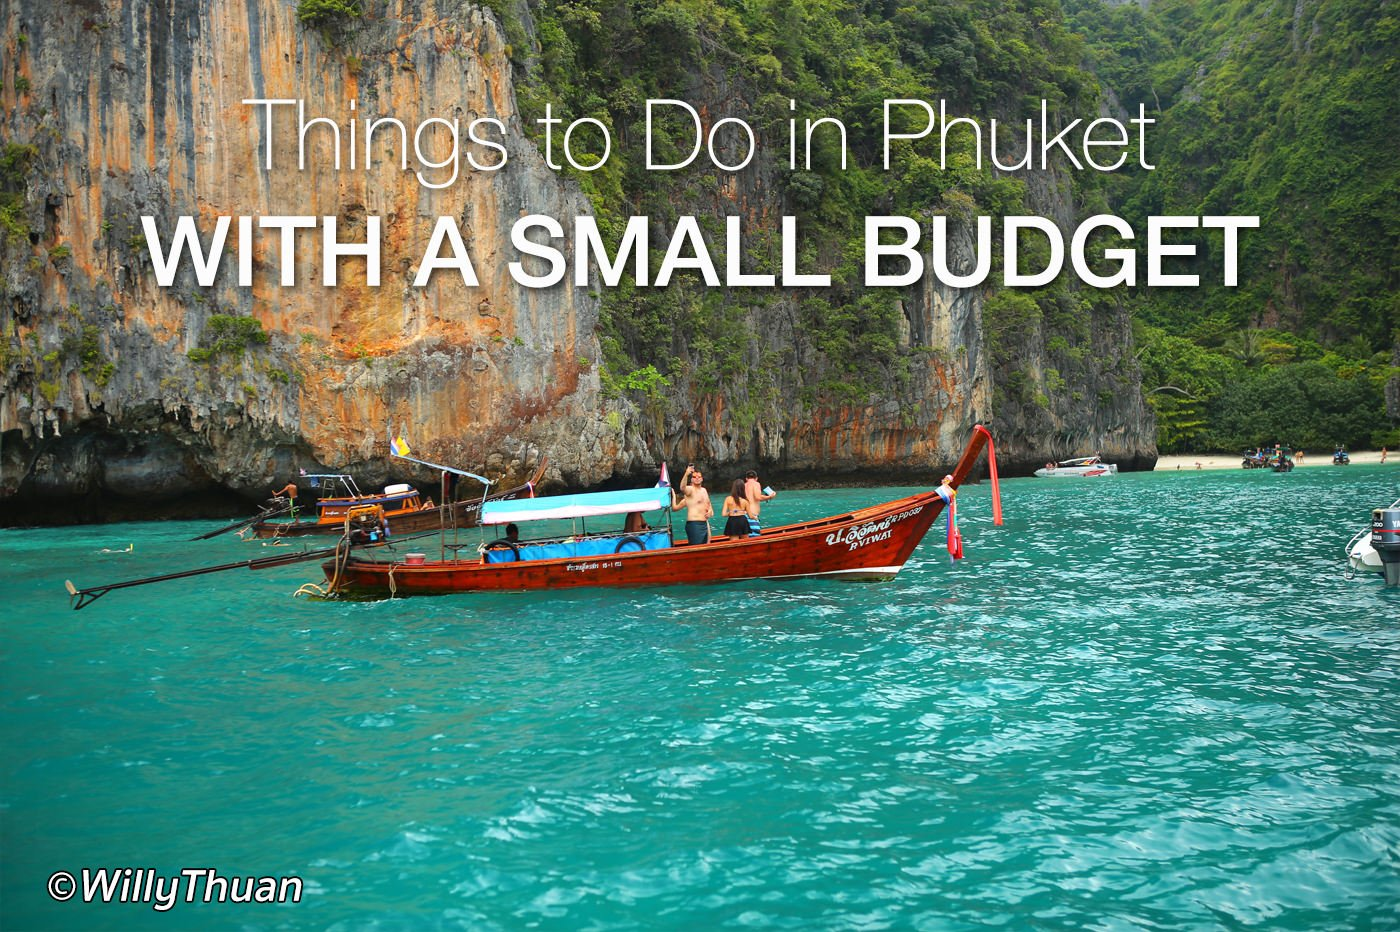 Phuket Geheimtipps 12 Things To Do In Phuket With A Small Budget Updated Phuket 101